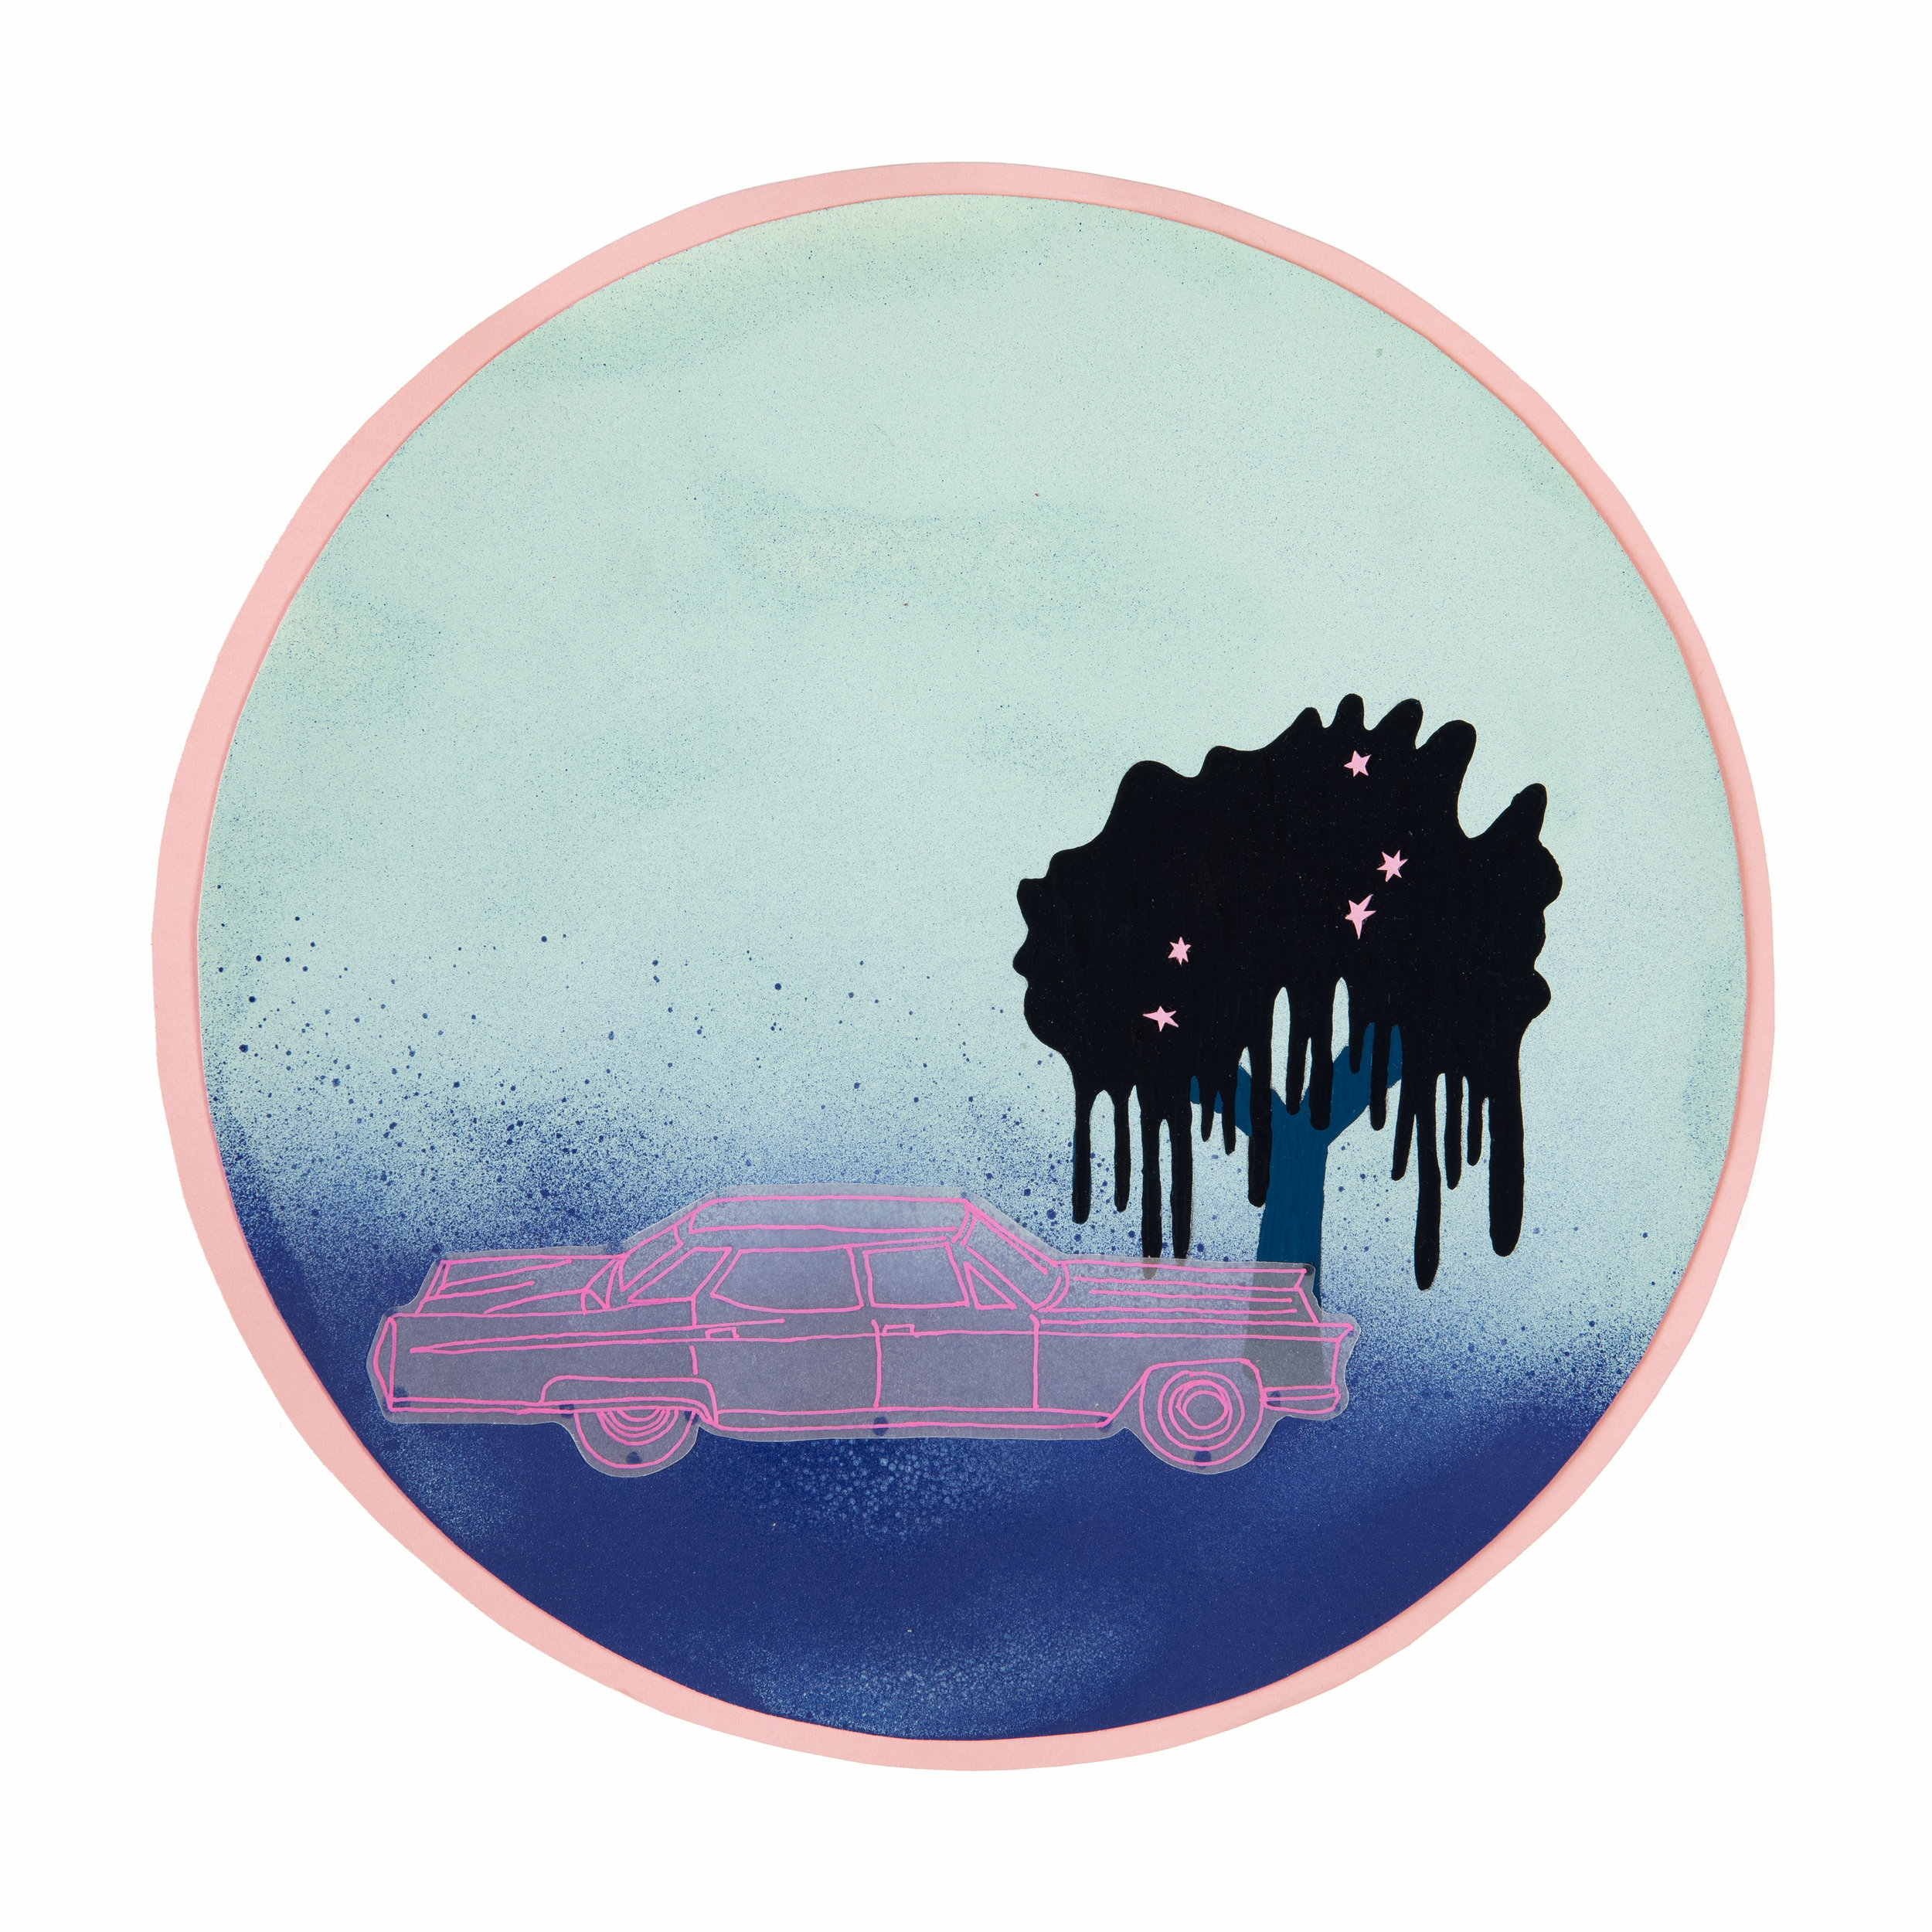 "Pink Cadillac Dream   Mixed media on paper, 8 ½"" diameter, 2019"